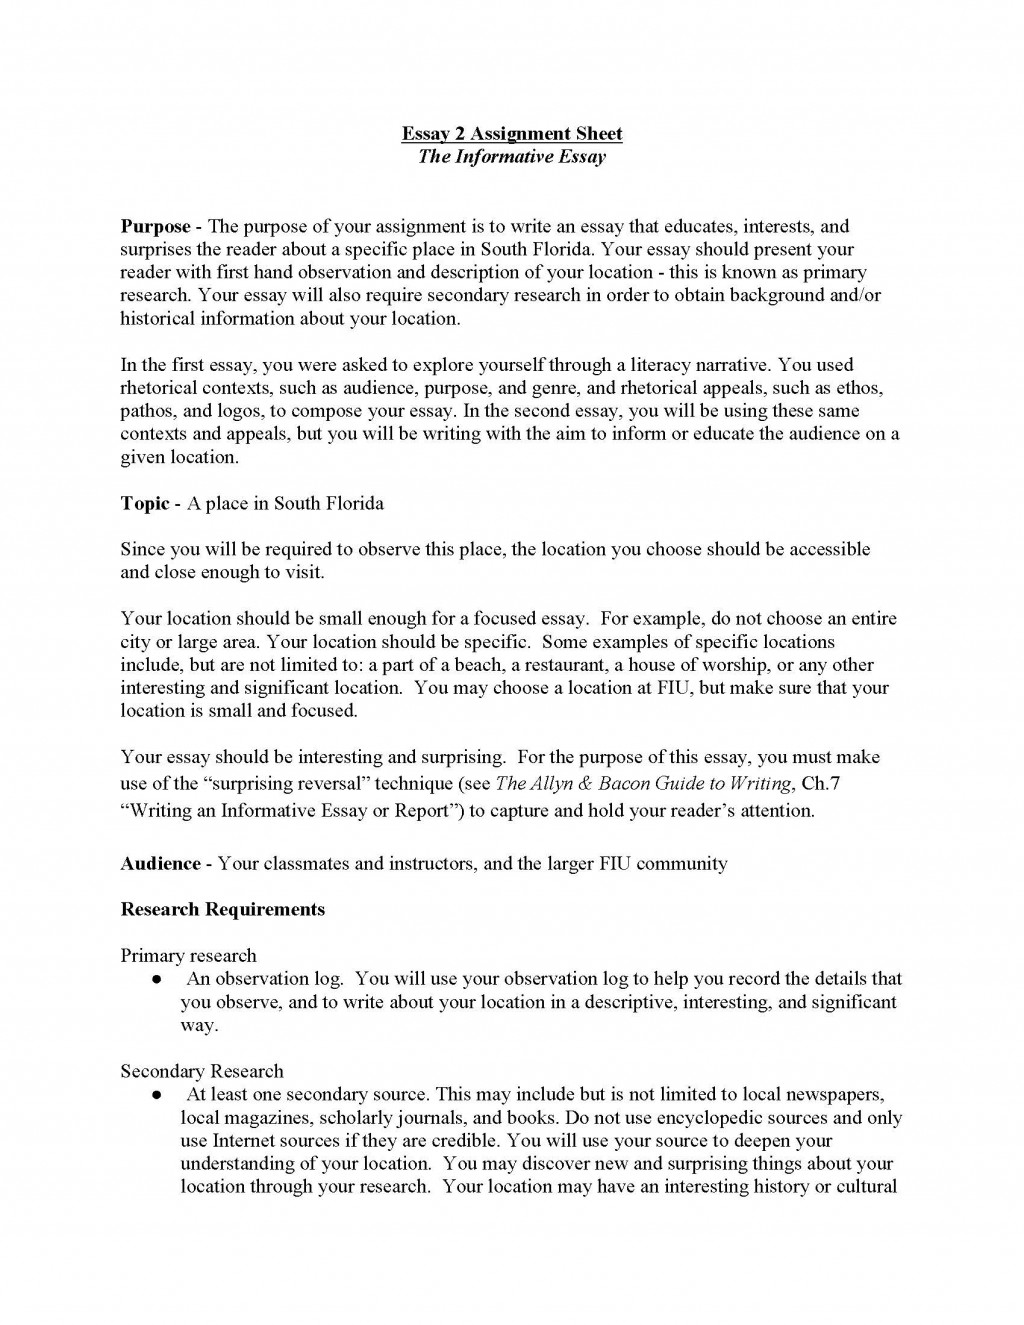 004 Essay Example Writing An Informative Unit Assignment Page Sensational About The Immigrant Experience Ppt Introduction Large